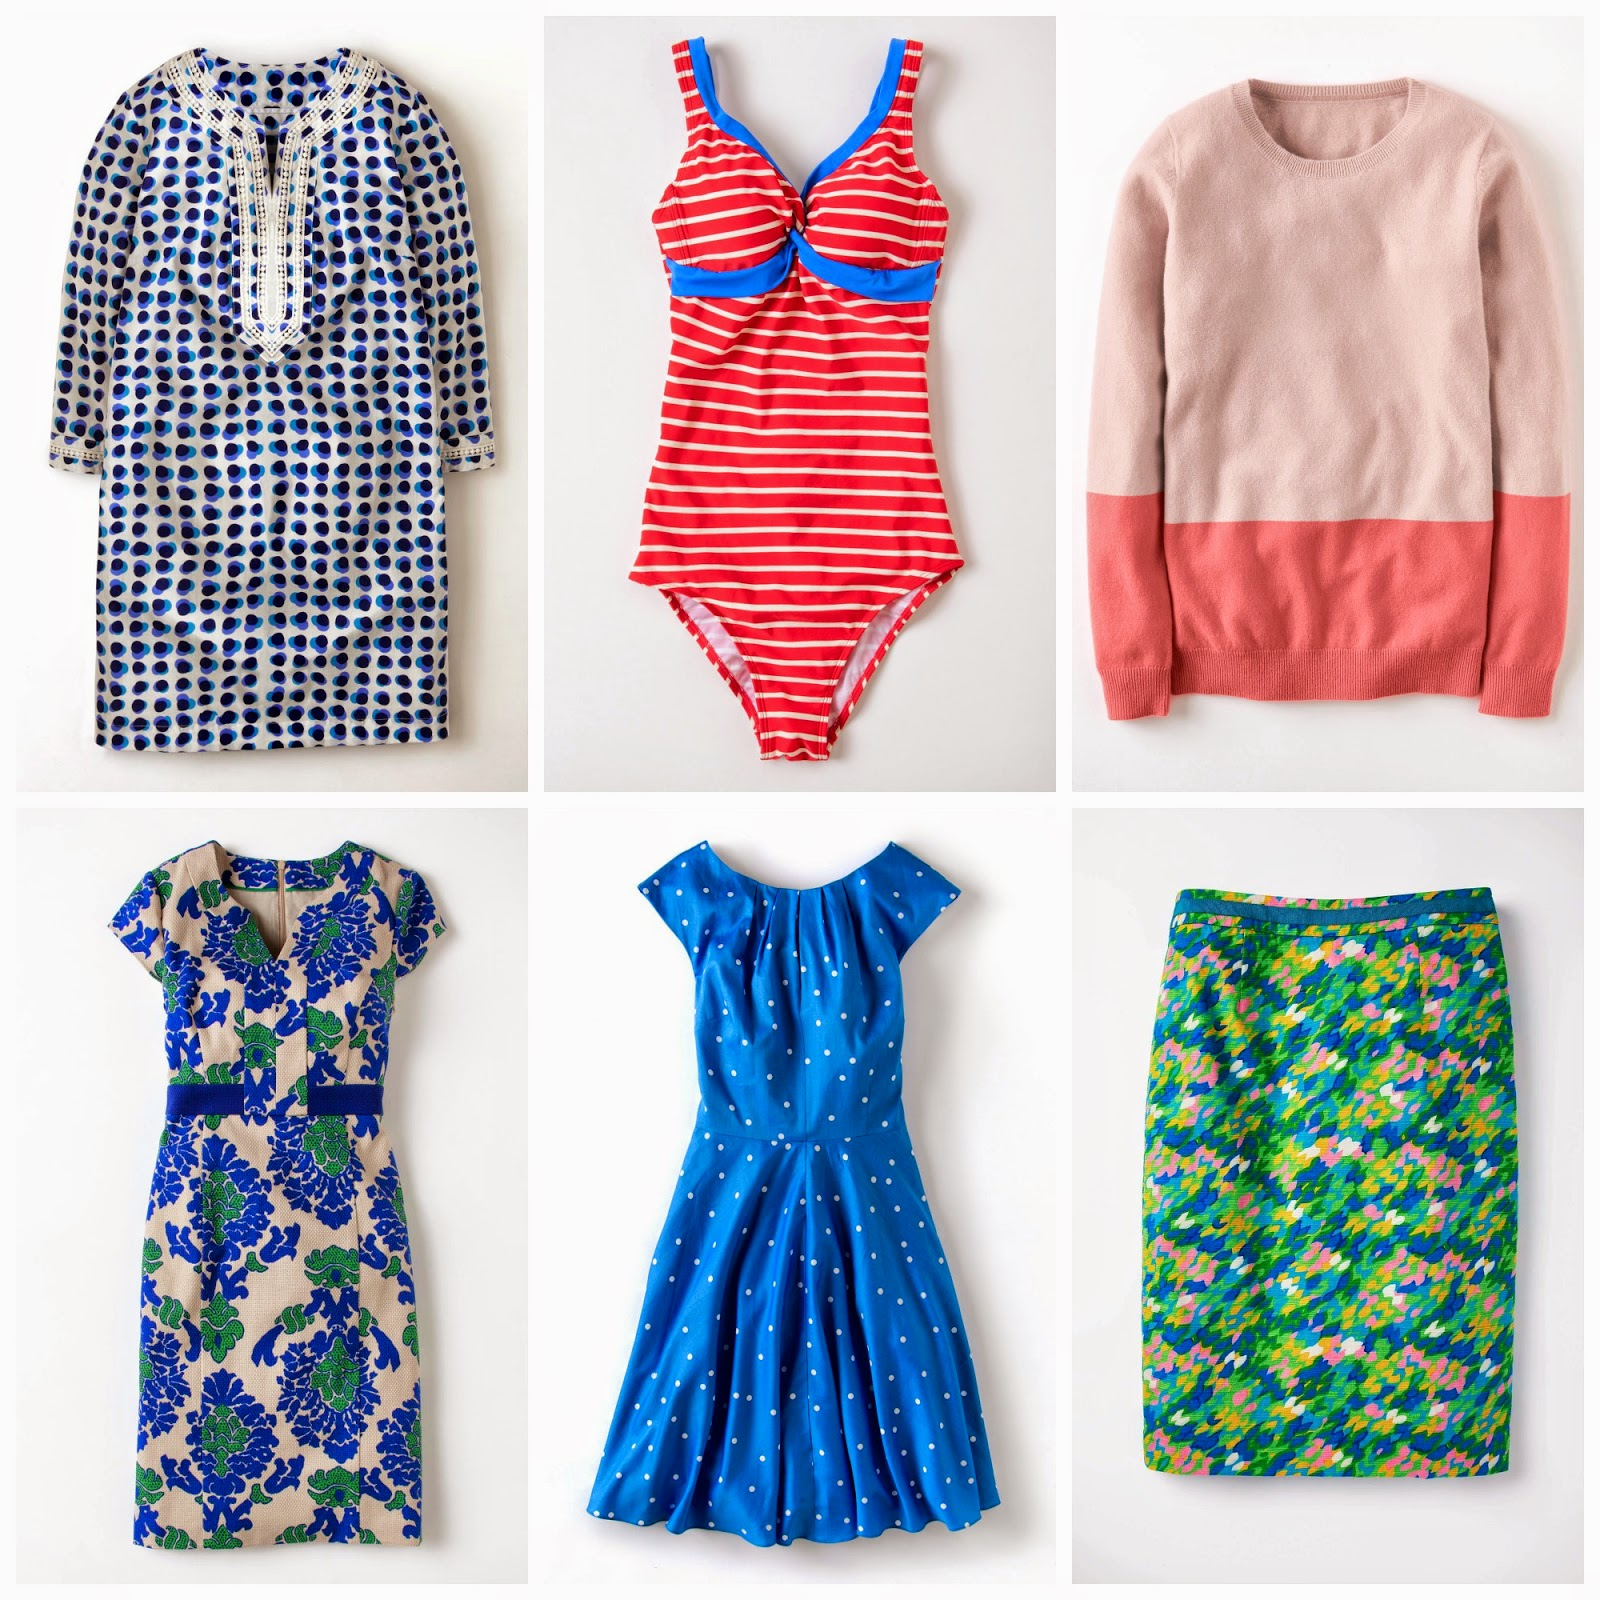 Nautical by Nature | Boden Spring Summer 2014 Women